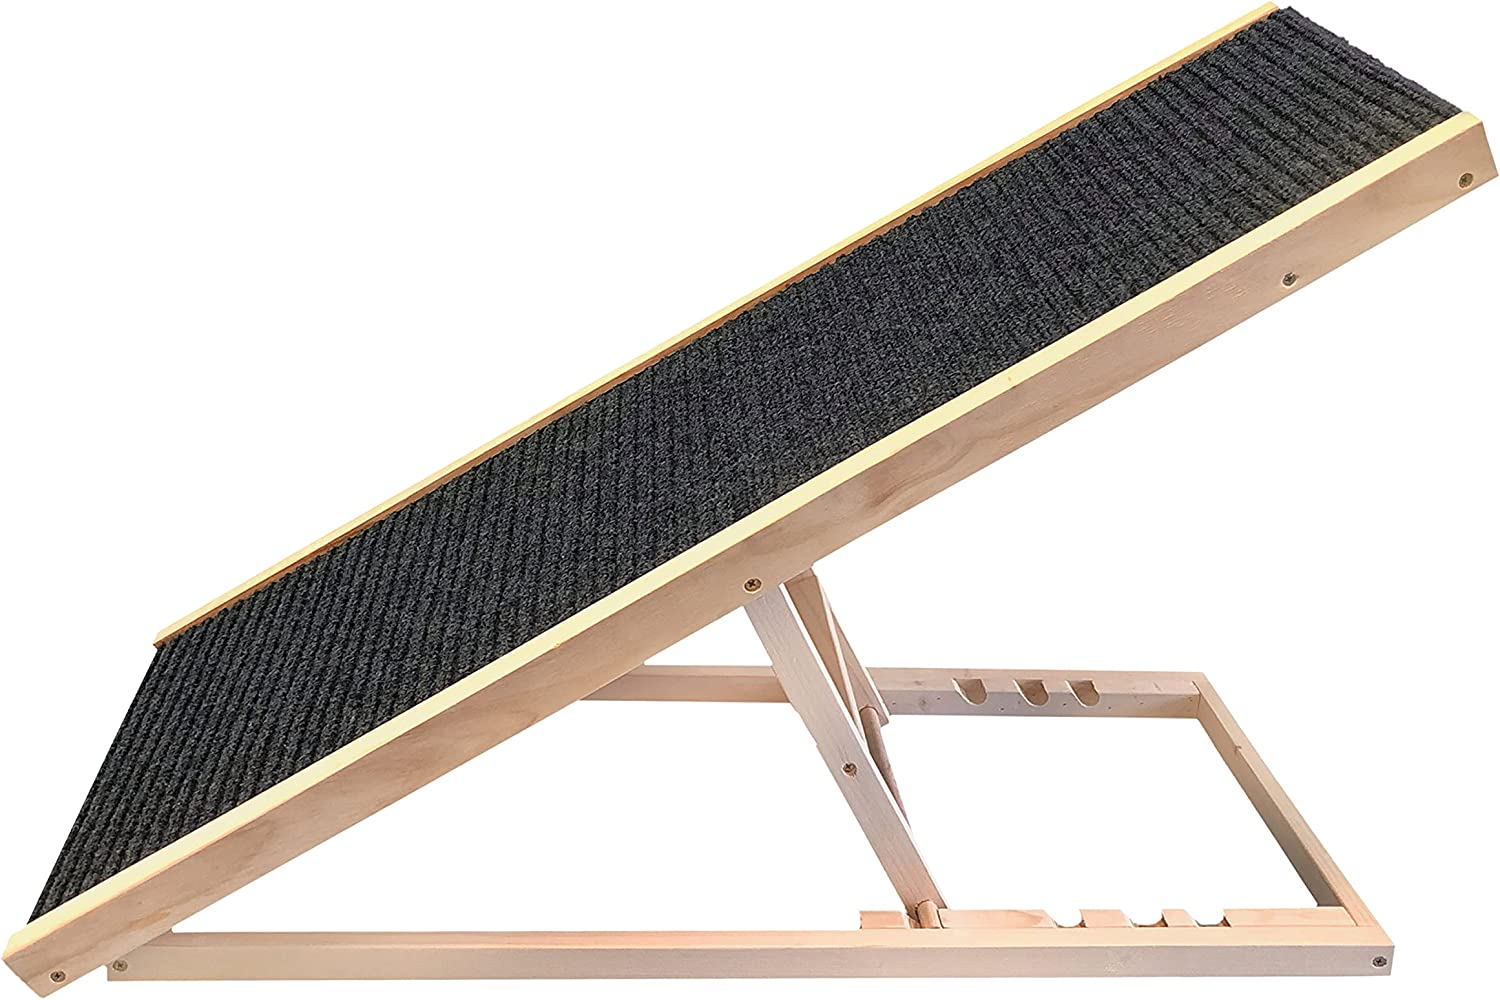 PATHOSIO PETS - Adjustable Dog Ramp for Dogs Ra Cats Max 84% OFF Outlet sale feature Car All